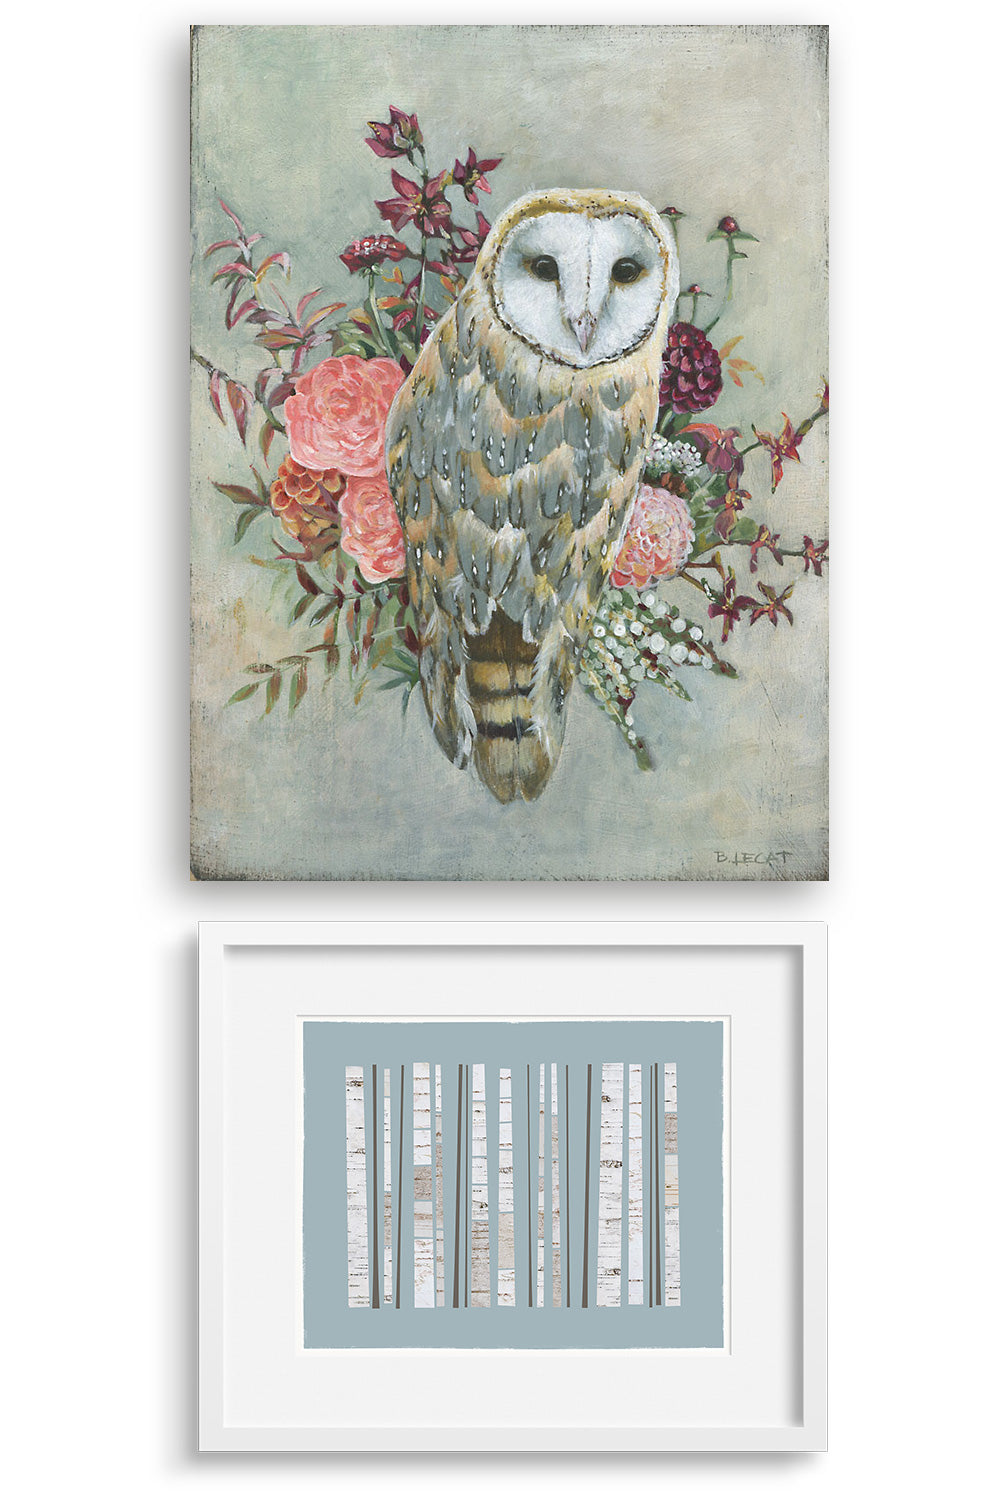 An art pairing of prints Grove by Janet Taylor Household Art and Barn Owl by Bonnie Lecat.